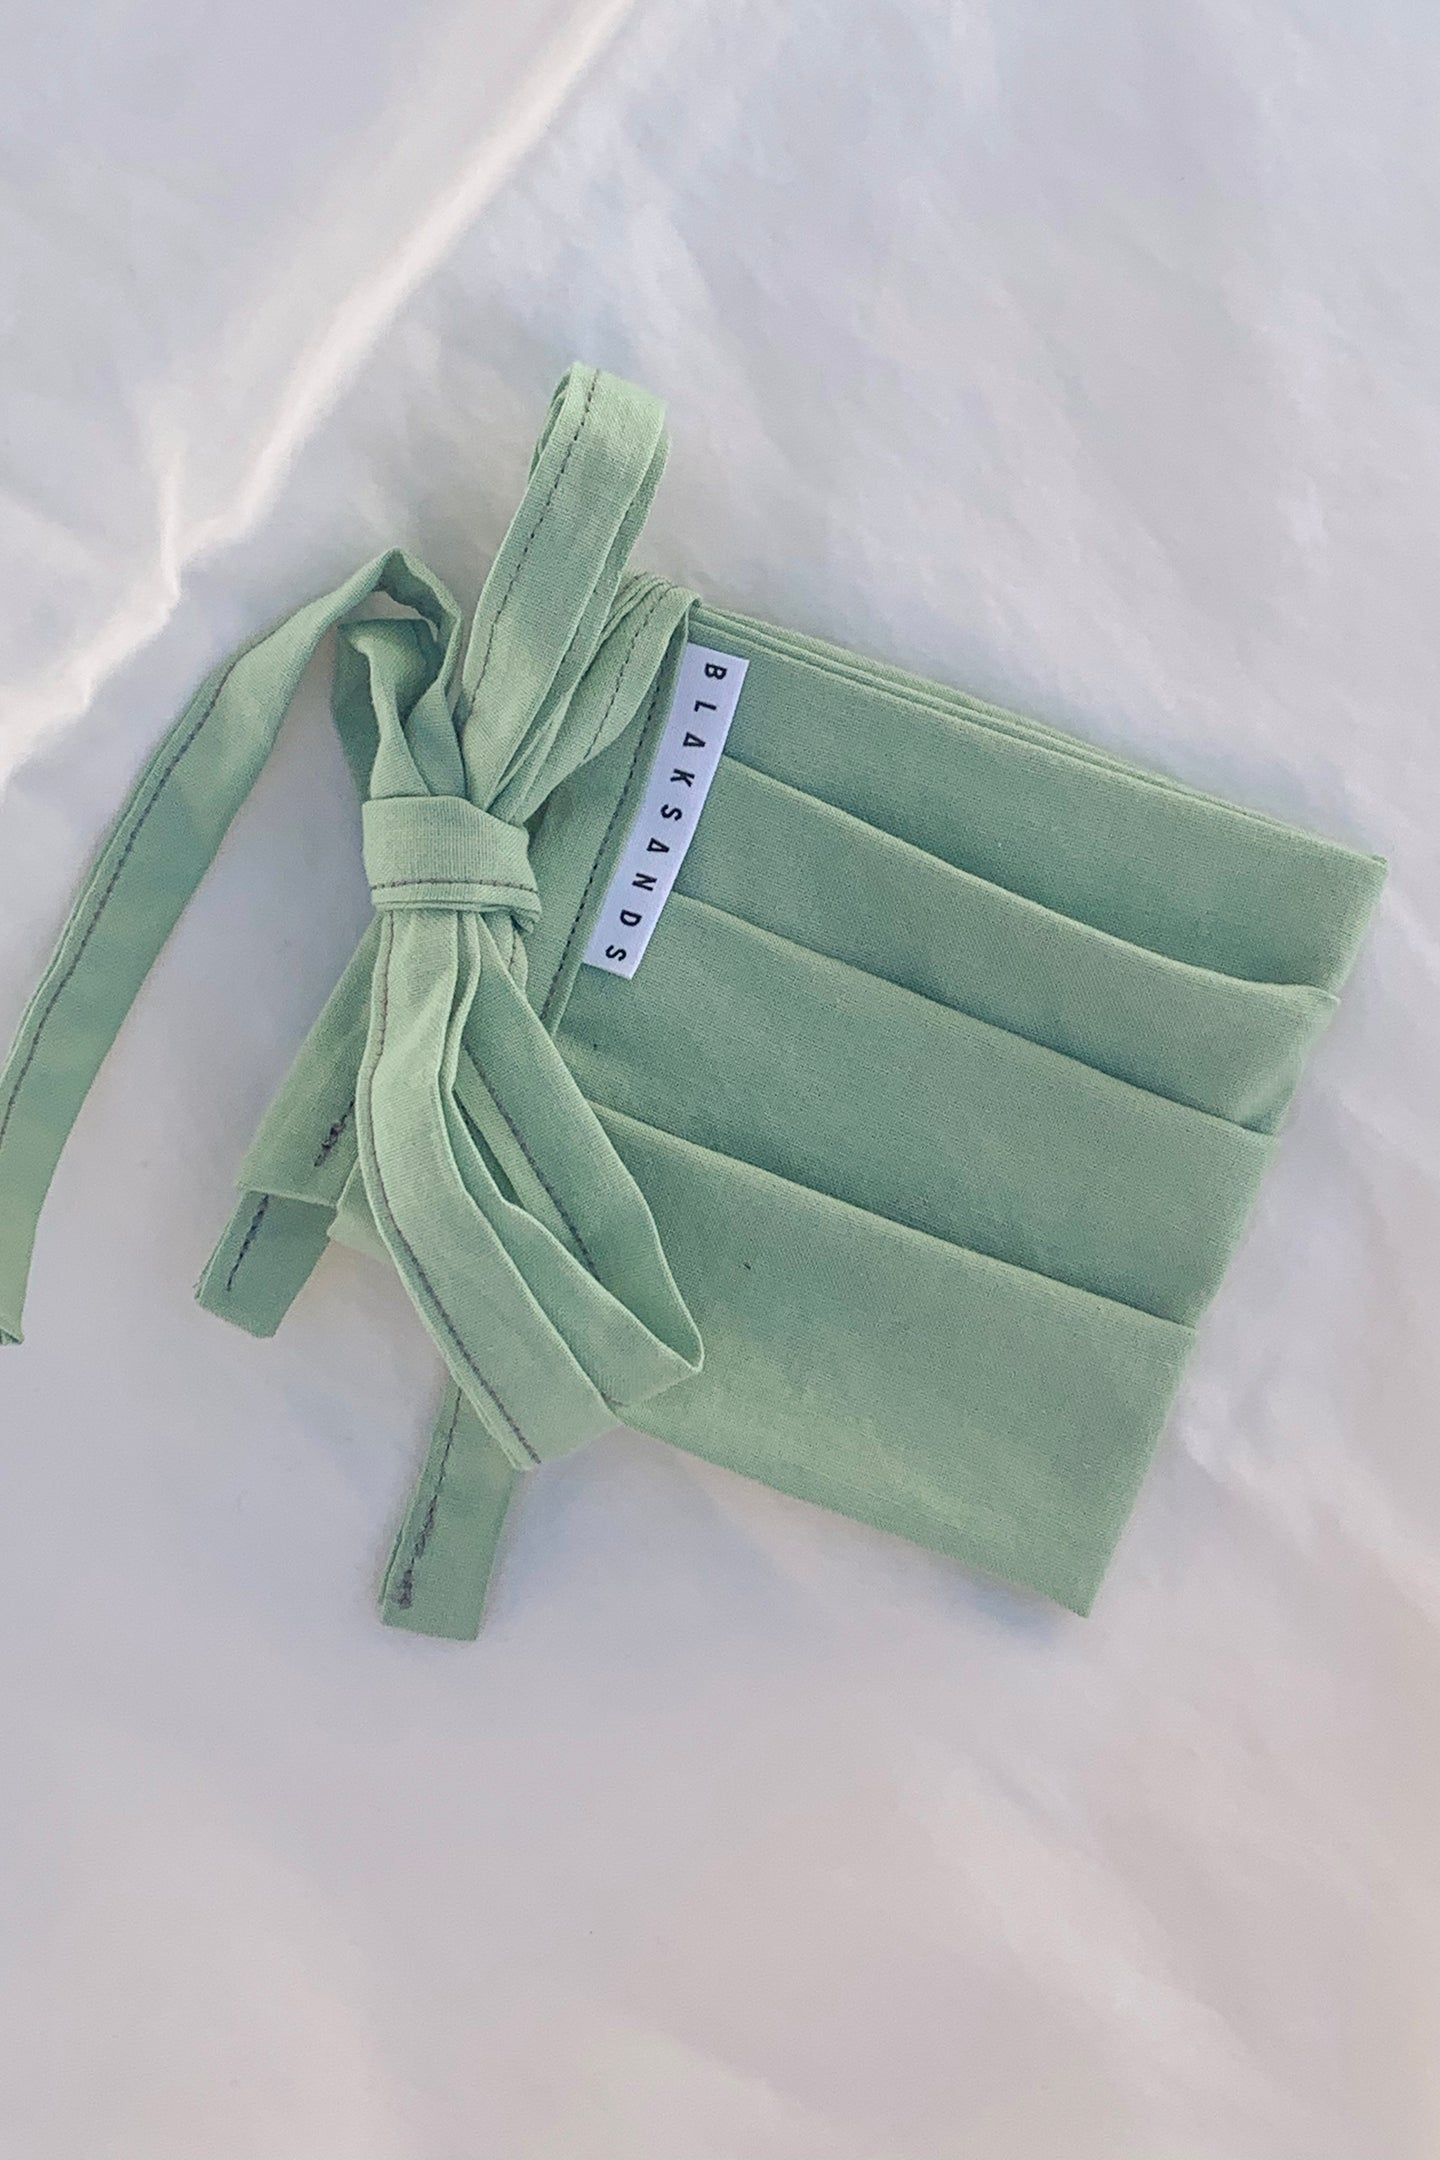 * PRE ORDER * Protective Cotton Mask - Seafoam Green